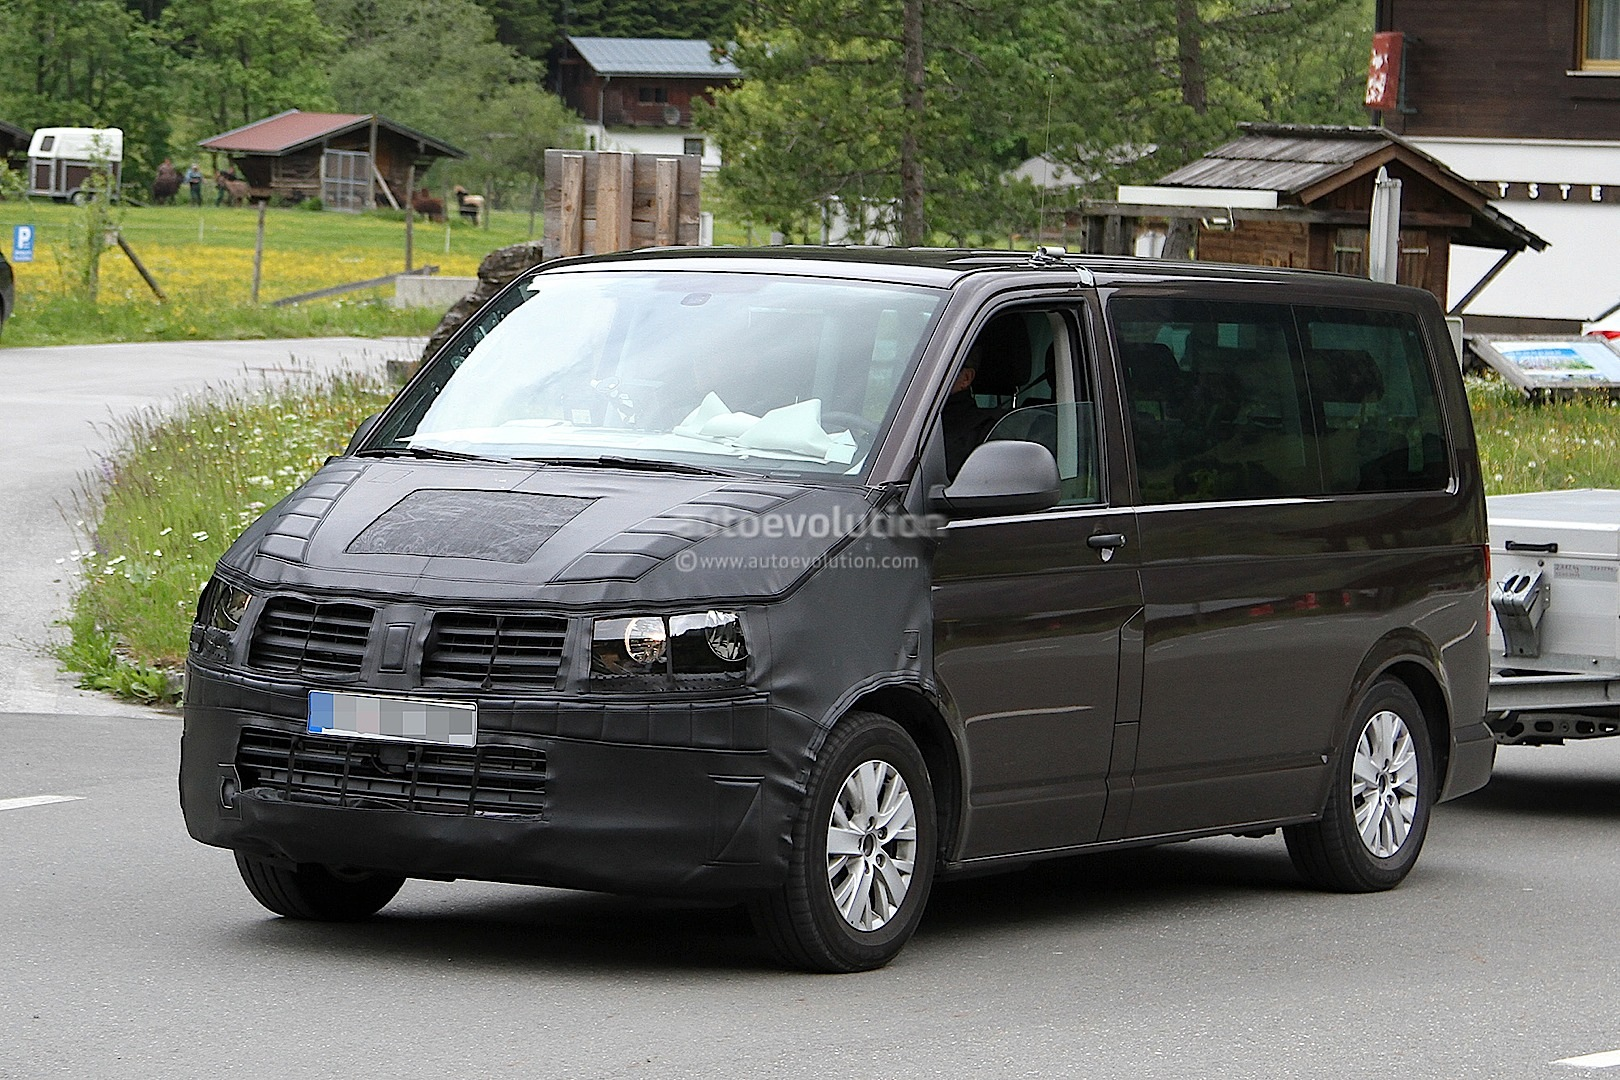 New T6 Volkswagen Transporter Interior Shown In Latest